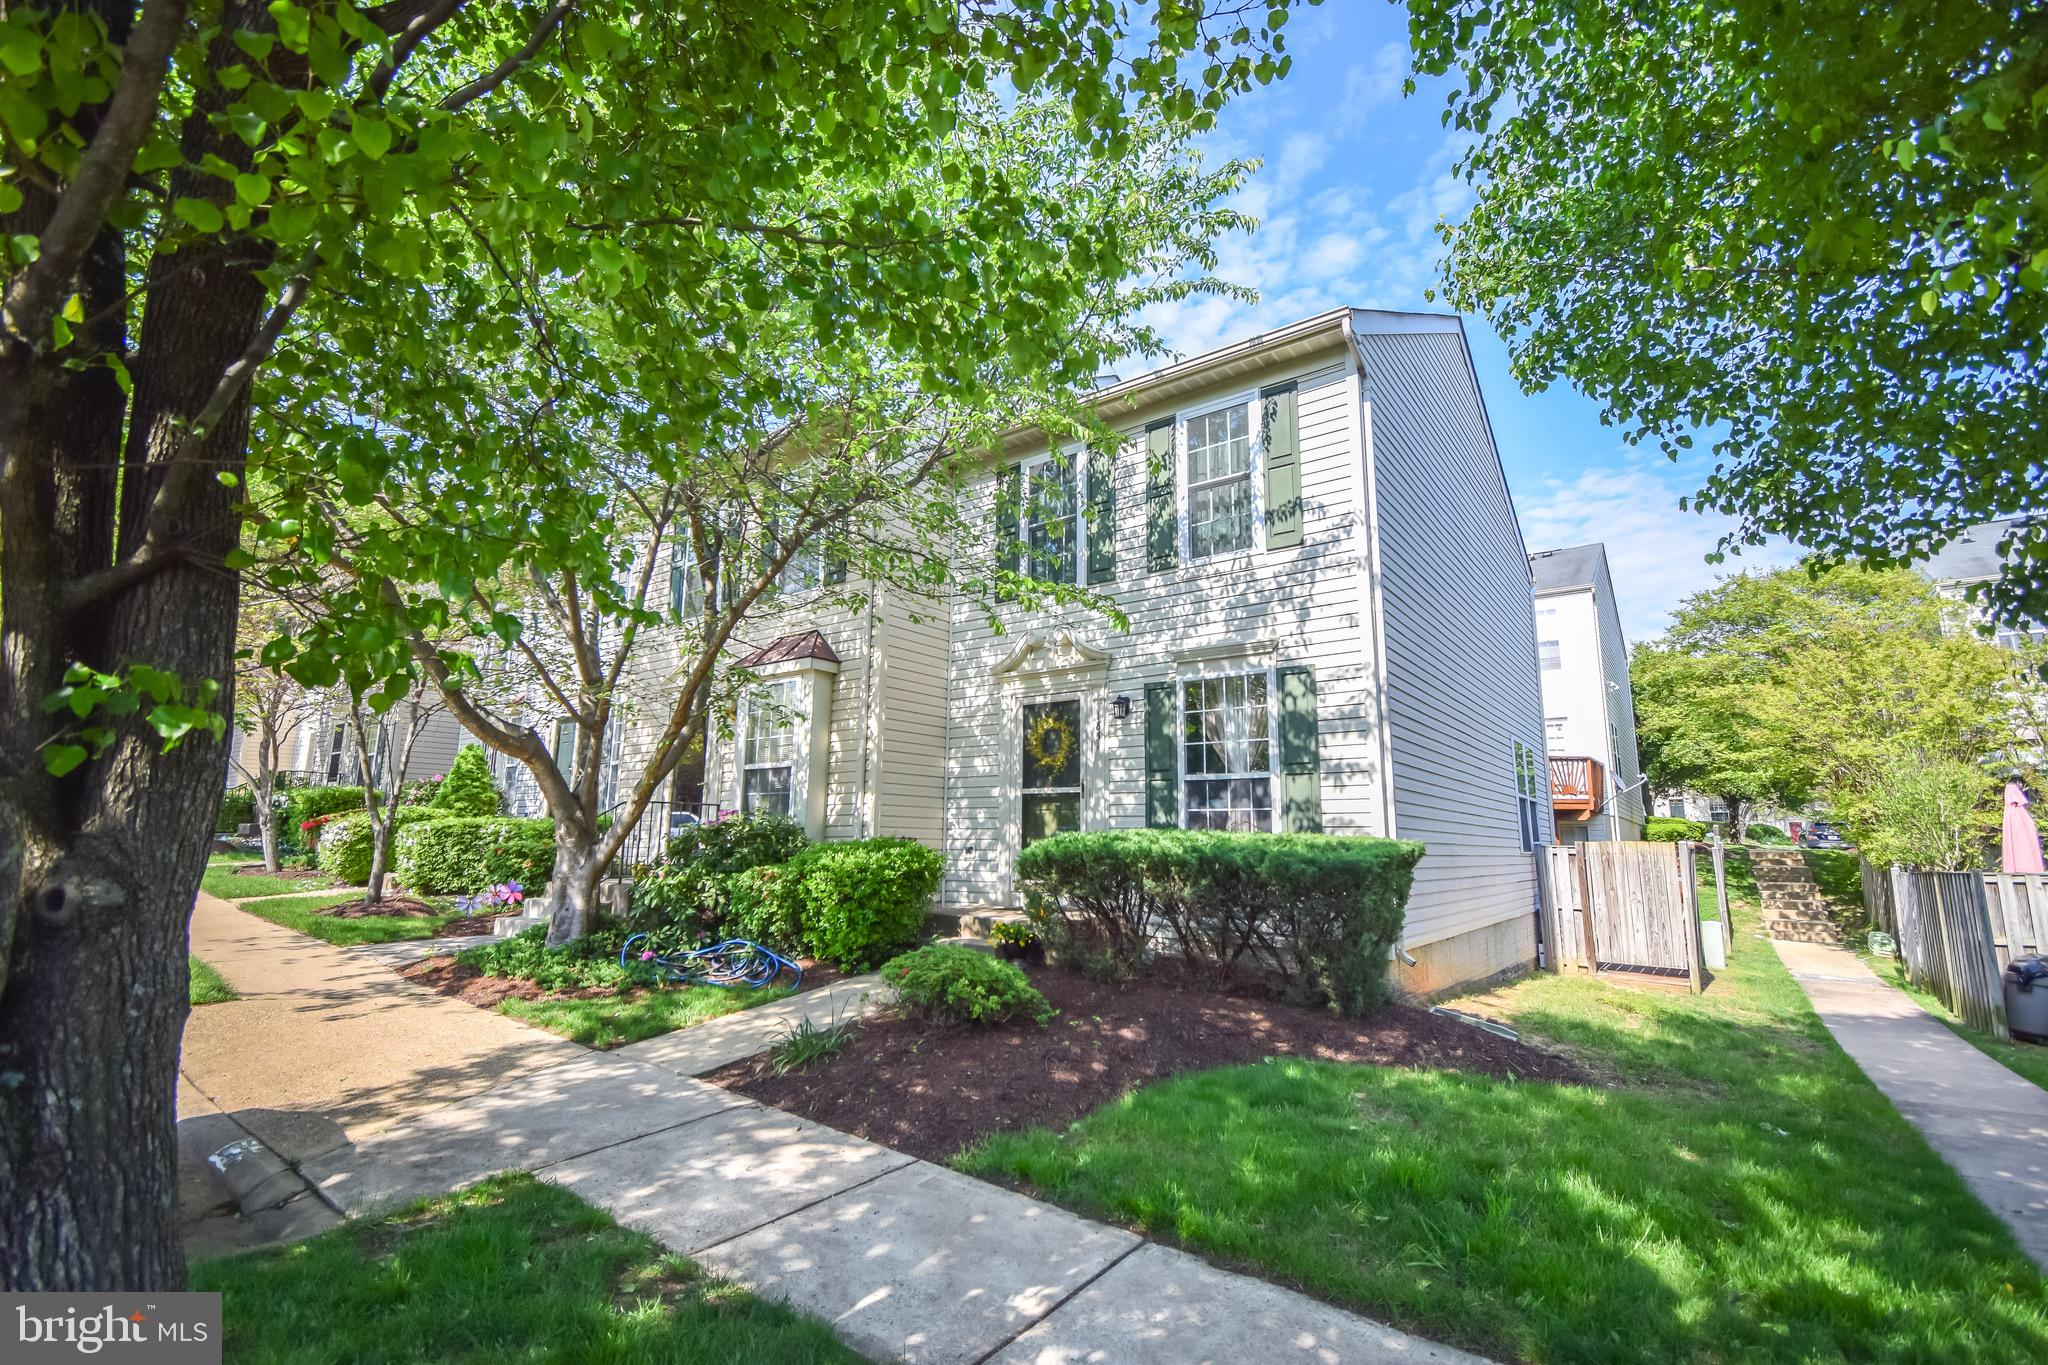 End unit alert! Open this Sunday 12-3pm!! Come check out this spacious two bedroom, two full bathroom, condo style townhome, super convenient to major transportation routes being just minutes to 95 and VRE. Head inside to main level where inviting foyer greets you with hardwood floors leading to spacious family room and large gourmet kitchen with island, stainless steel appliances and loads of cabinet space. Head upstairs to two large bedrooms with spacious master bedroom and full bathroom with his and her sinks. Head downtairs to fully finished basement with cozy gas fireplace, additional full bathroom and separate utility room with washer and dryer. Home is great for pets with fully fenced backyard with spacious deck. Water, trash, sewer and front yard maintenance included in Condo dues! Playground just steps from from door! Oversized assigned parking space just steps to front door! Check out 3D Virtual Tour here -----> https://my.matterport.com/show/?m=Gpz1R5koboL